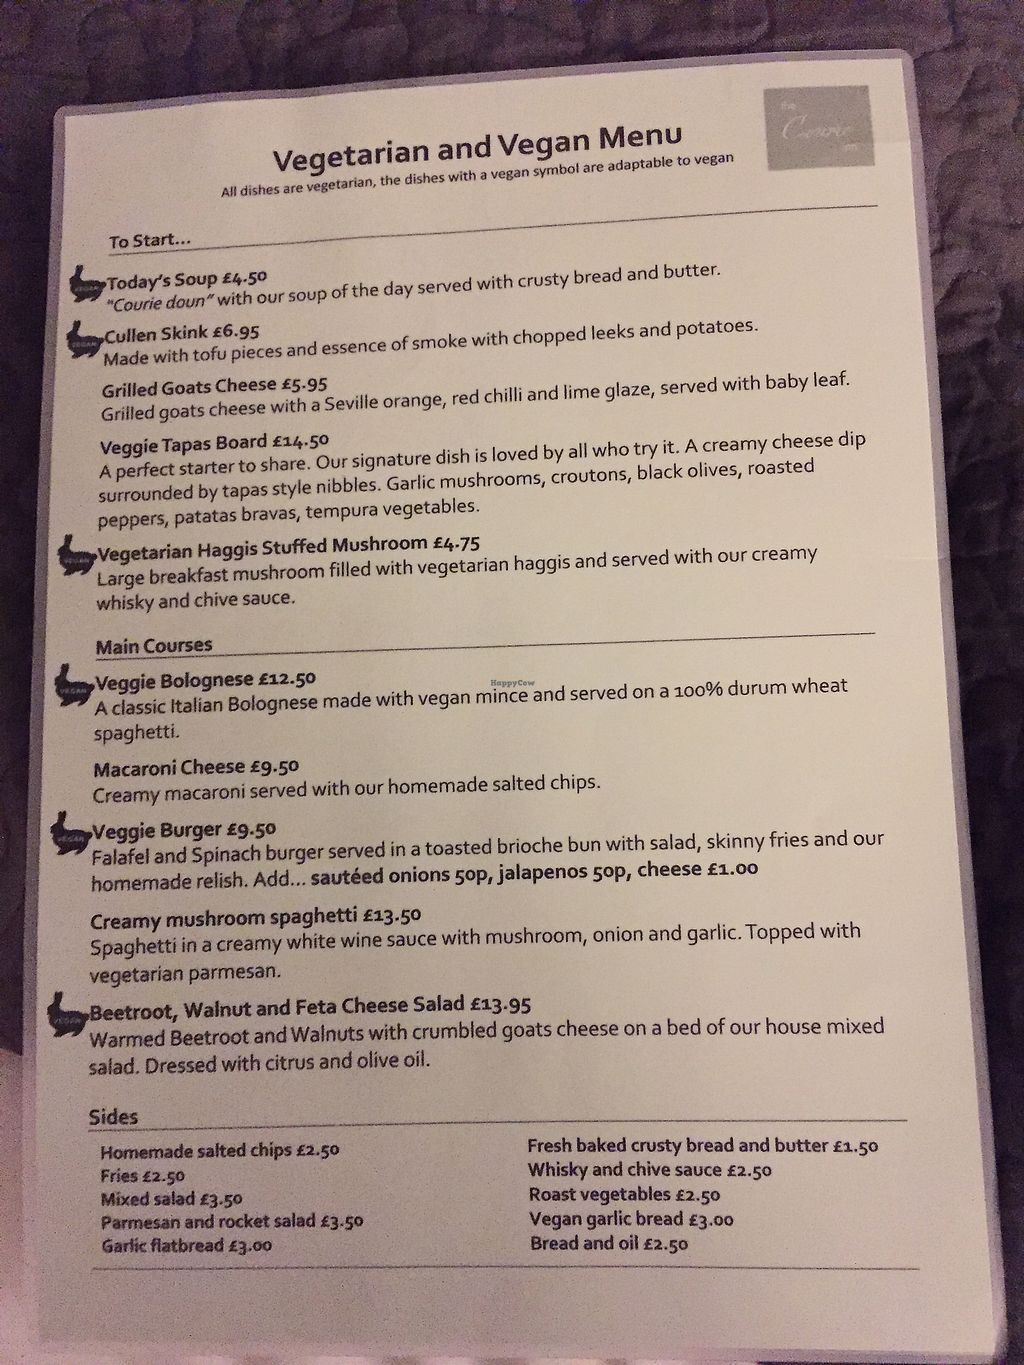 """Photo of The Courie Inn  by <a href=""""/members/profile/ChristineMcLaughlin"""">ChristineMcLaughlin</a> <br/>Veg/vegan menu <br/> December 7, 2017  - <a href='/contact/abuse/image/106733/333047'>Report</a>"""